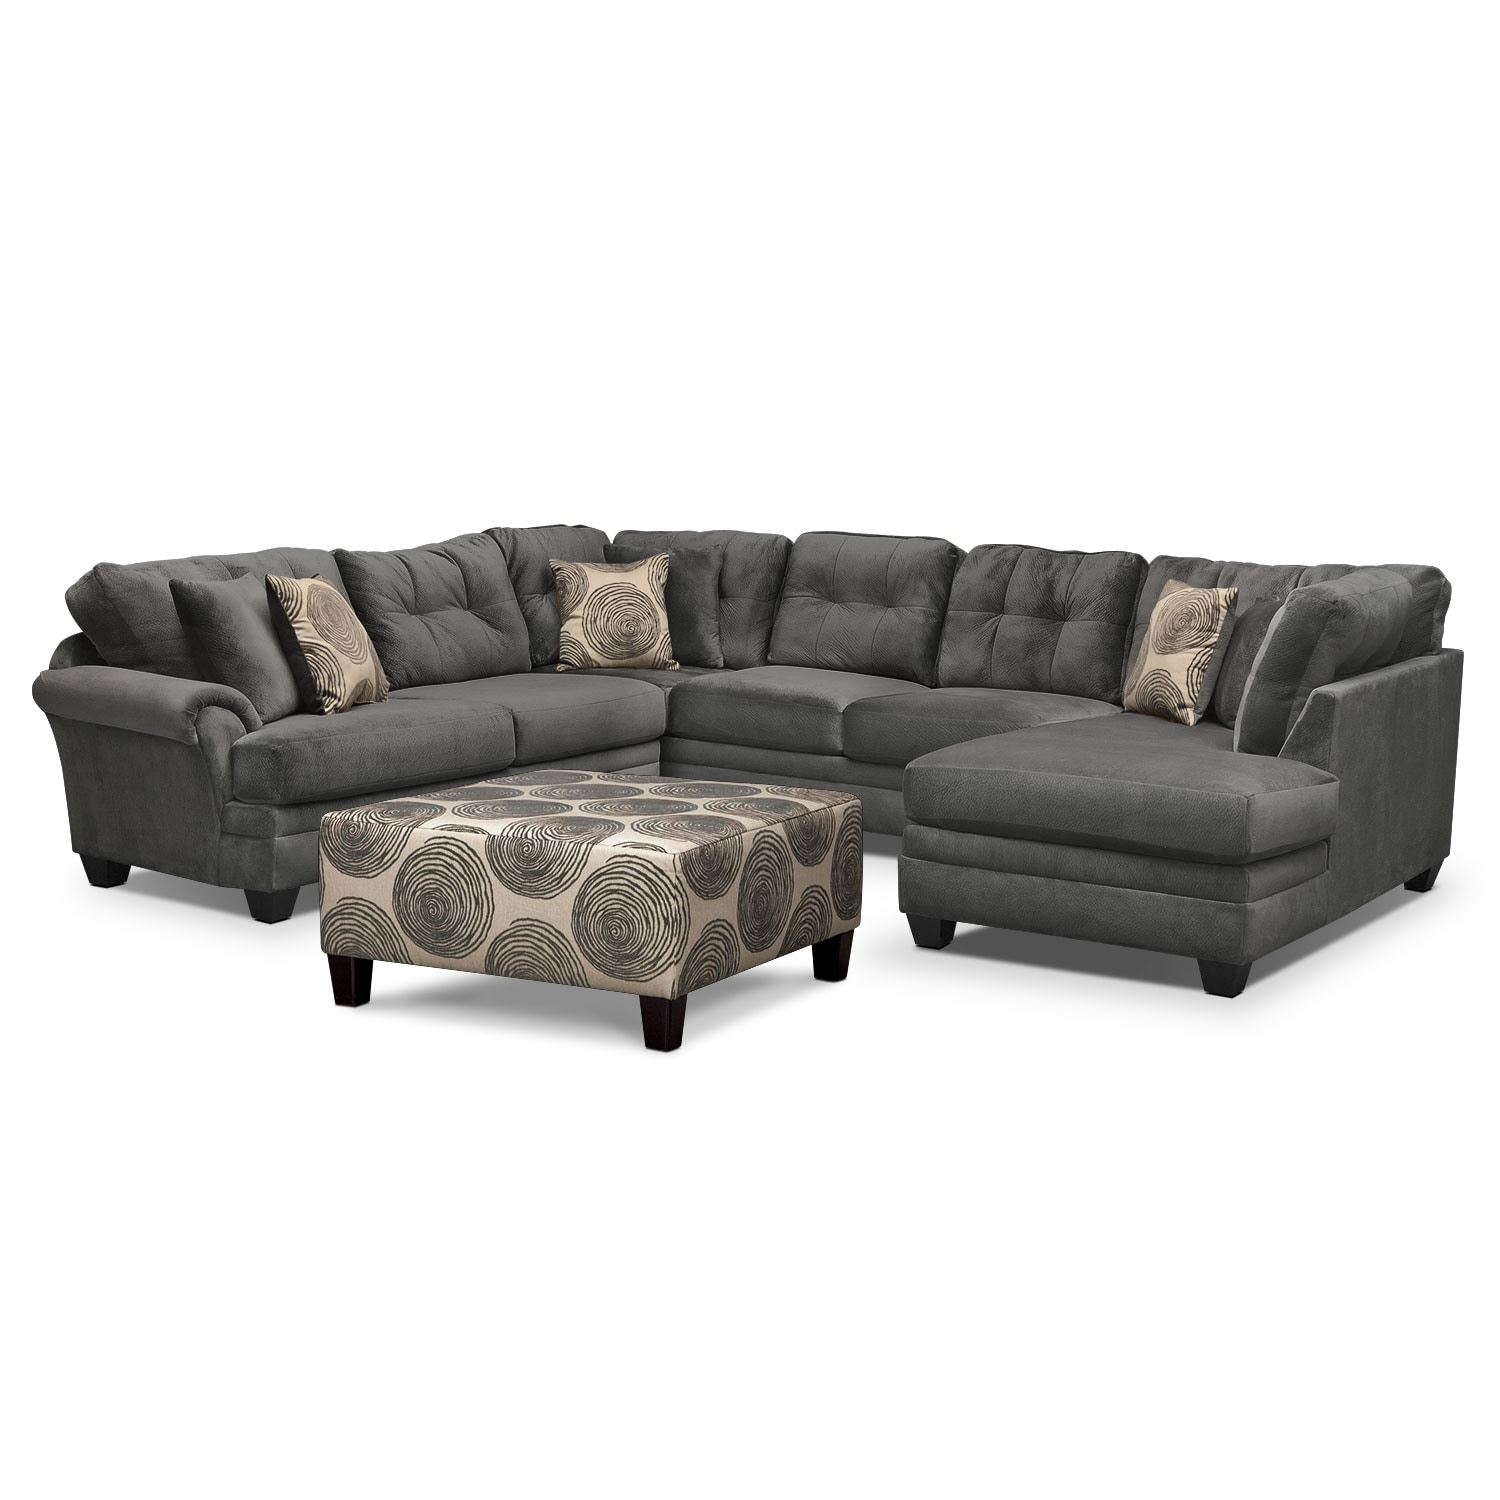 Cordelle 3 Piece Sectional And Cocktail Ottoman Set Gray